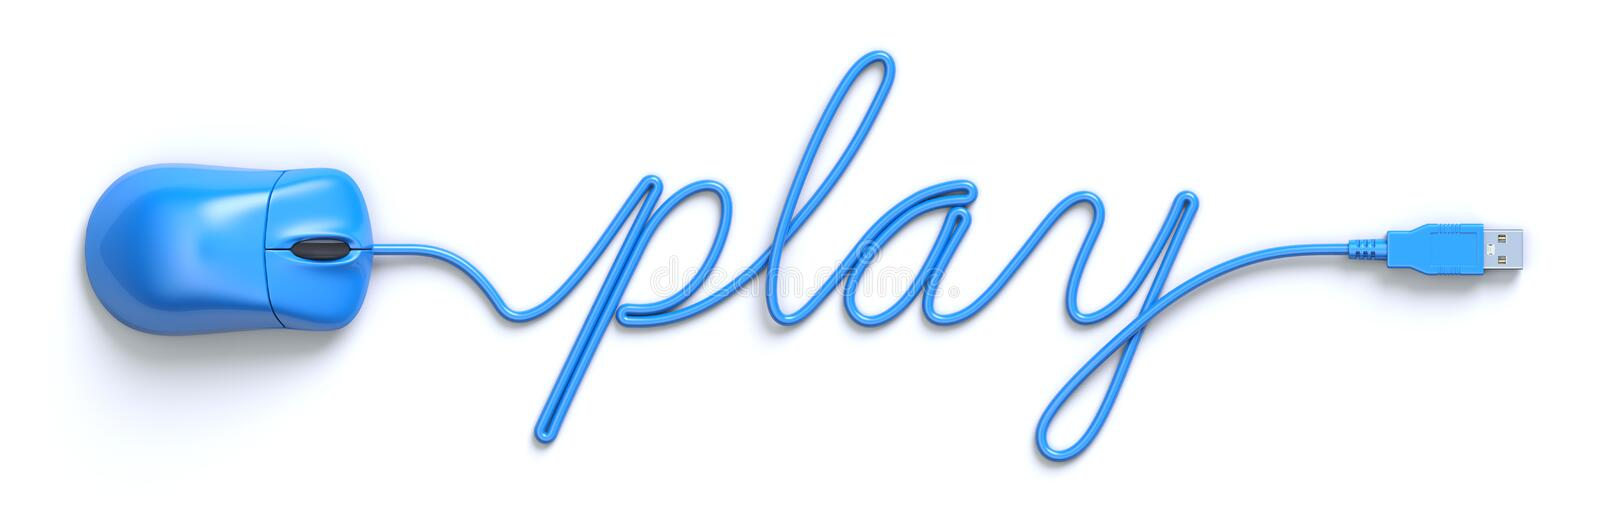 Blue mouse and cable in the shape of play word. 3D illustration royalty free illustration